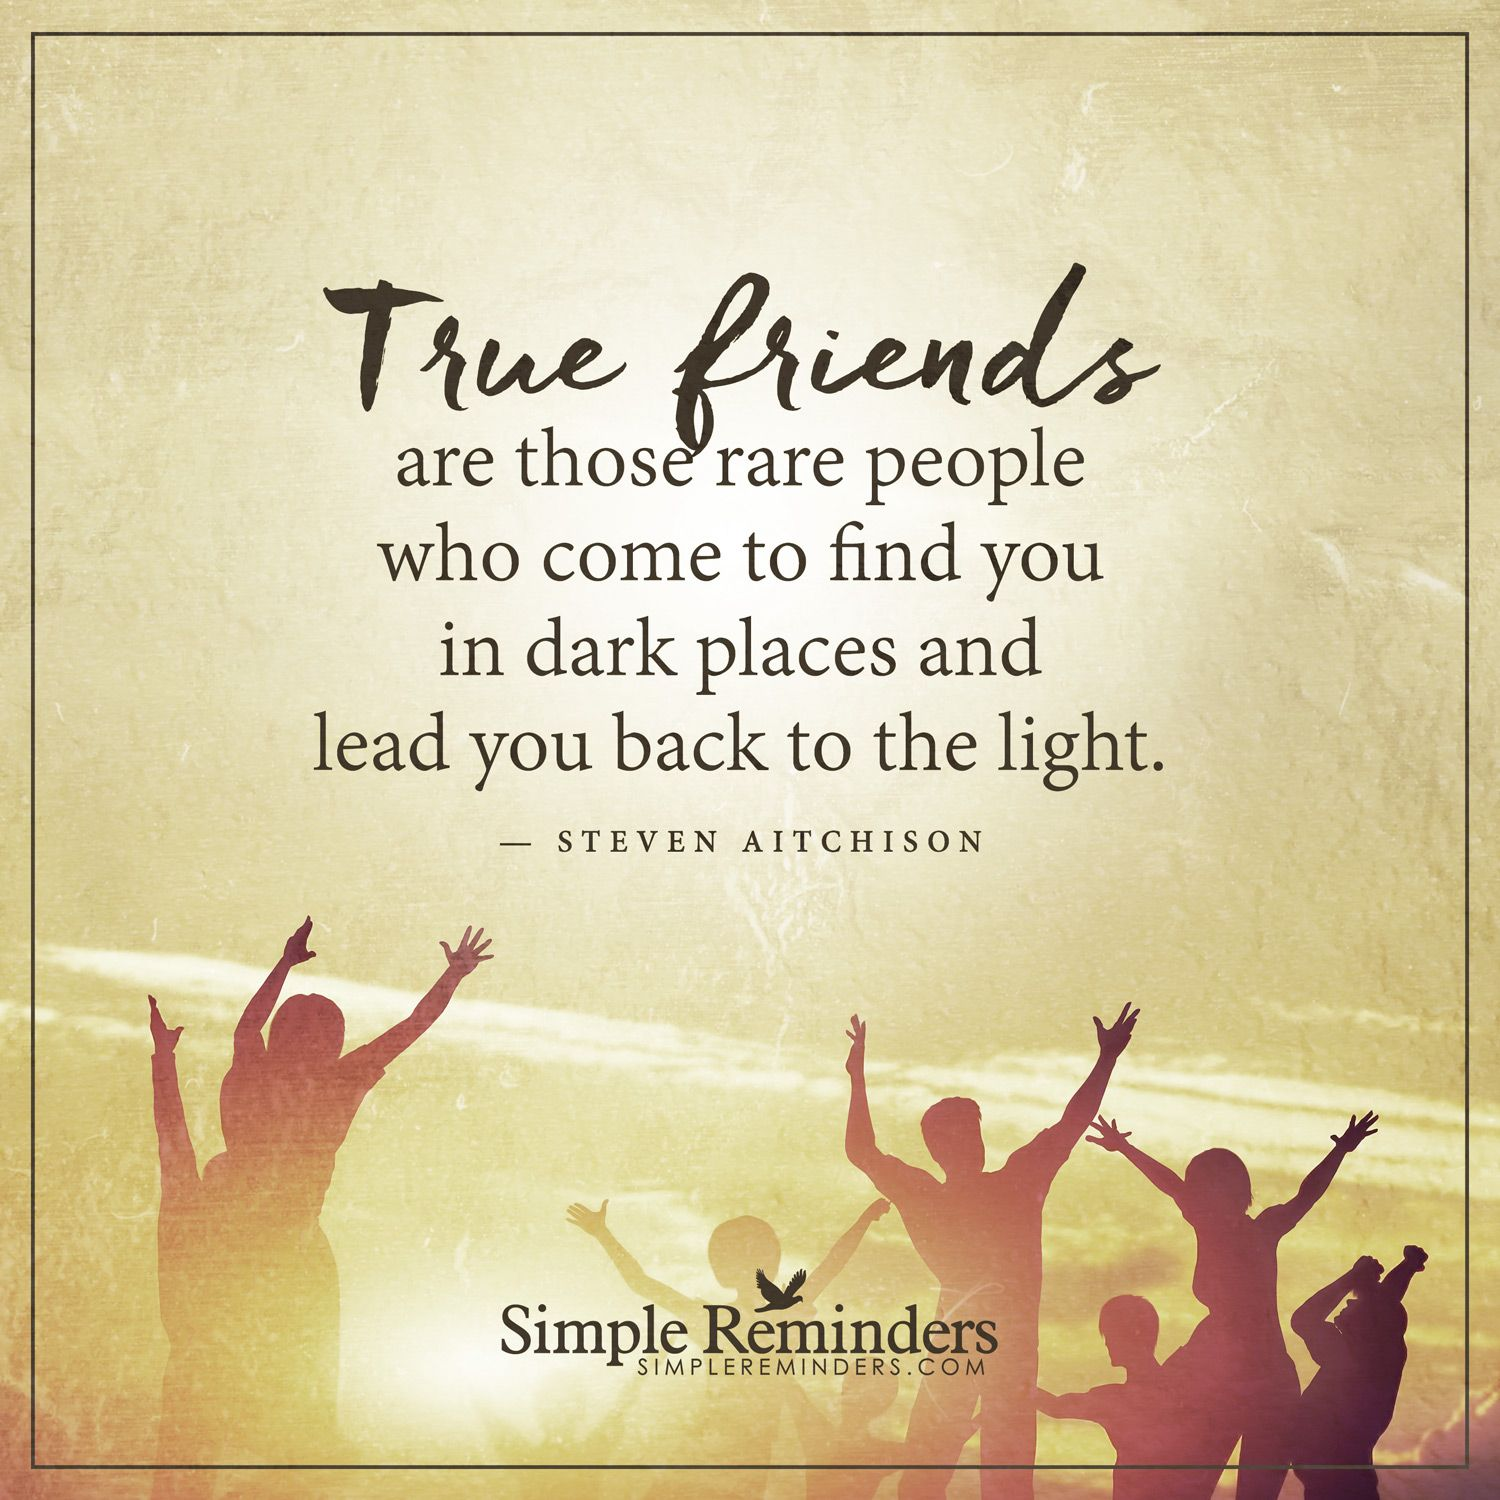 Love Finds You Quote: True Friends True Friends Are Those Rare People Who Come